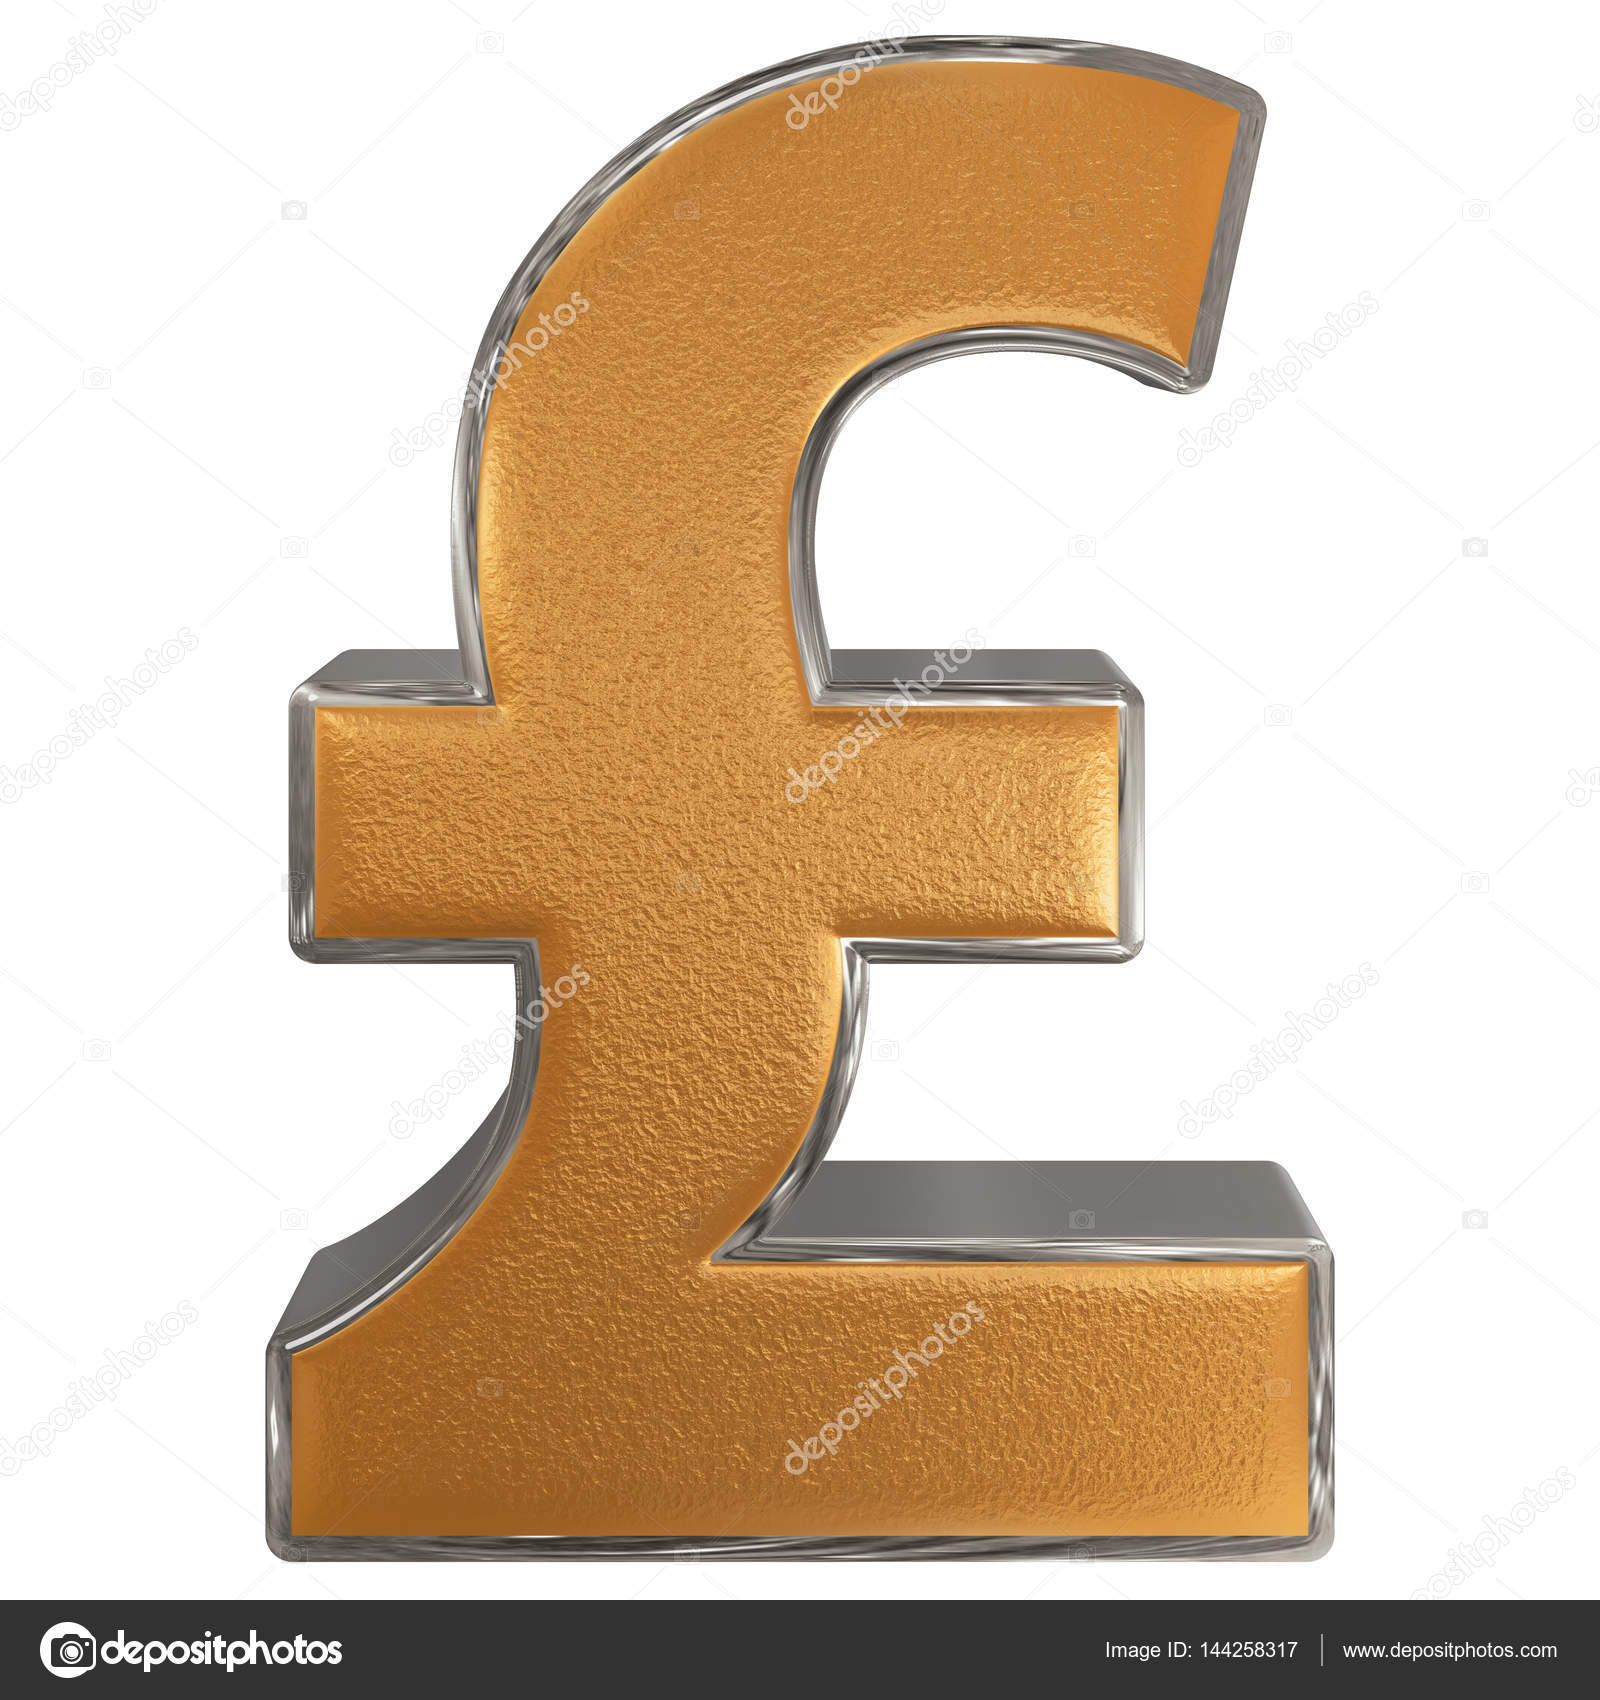 Symbol of british pound sterling isolated on white background symbol of british pound sterling isolated on white background stock photo biocorpaavc Gallery